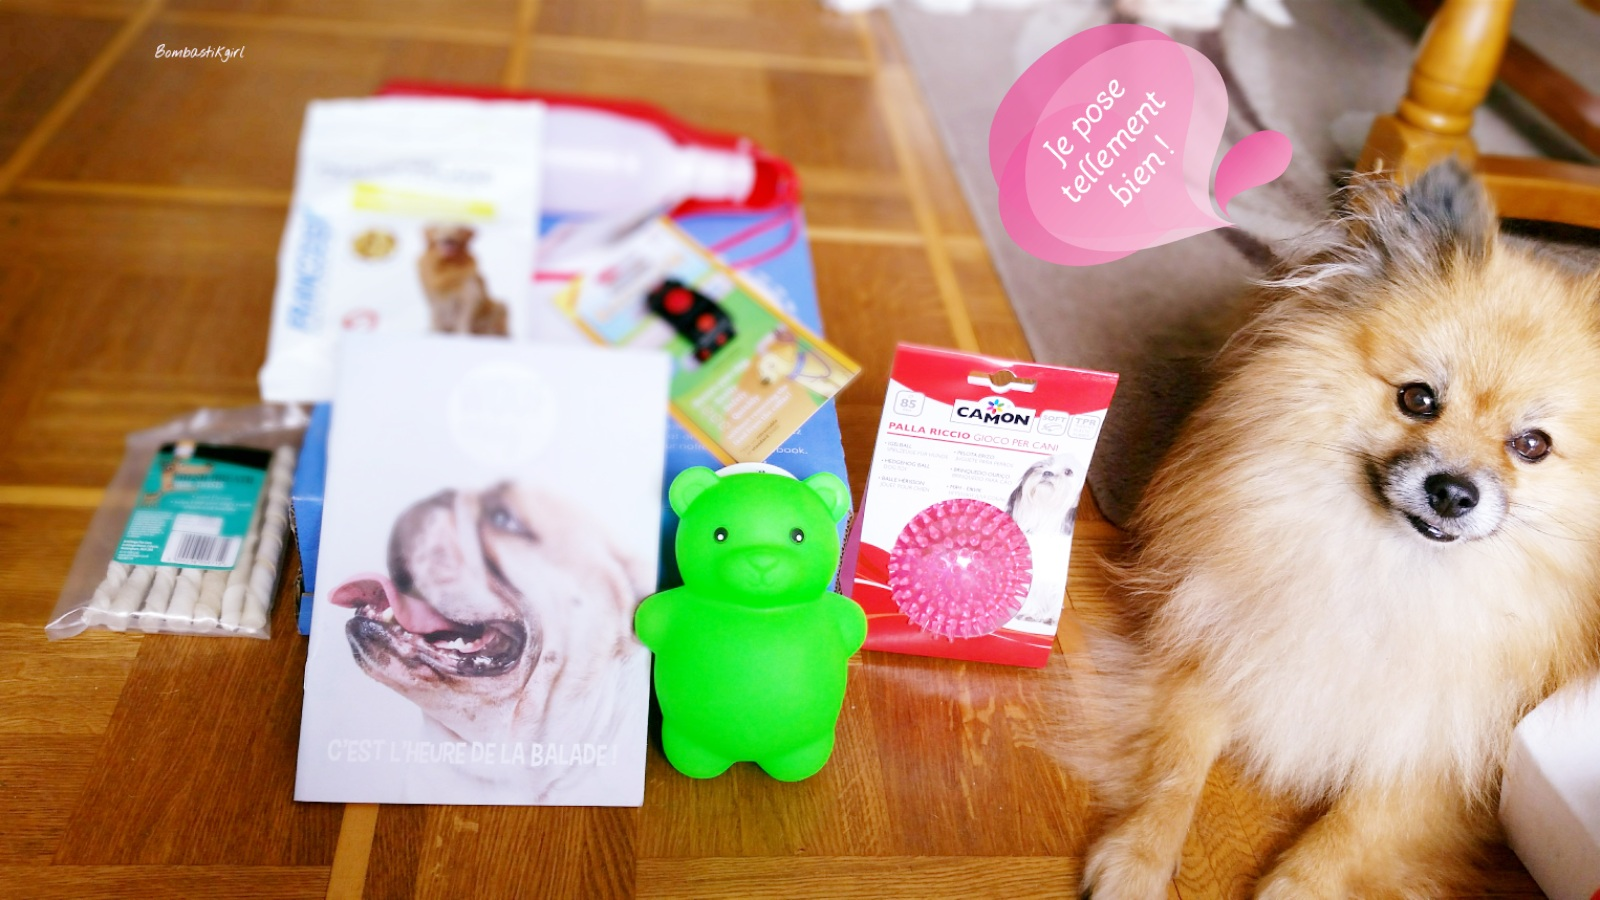 CONCOURS : Gagne ta Woufbox (terminé)